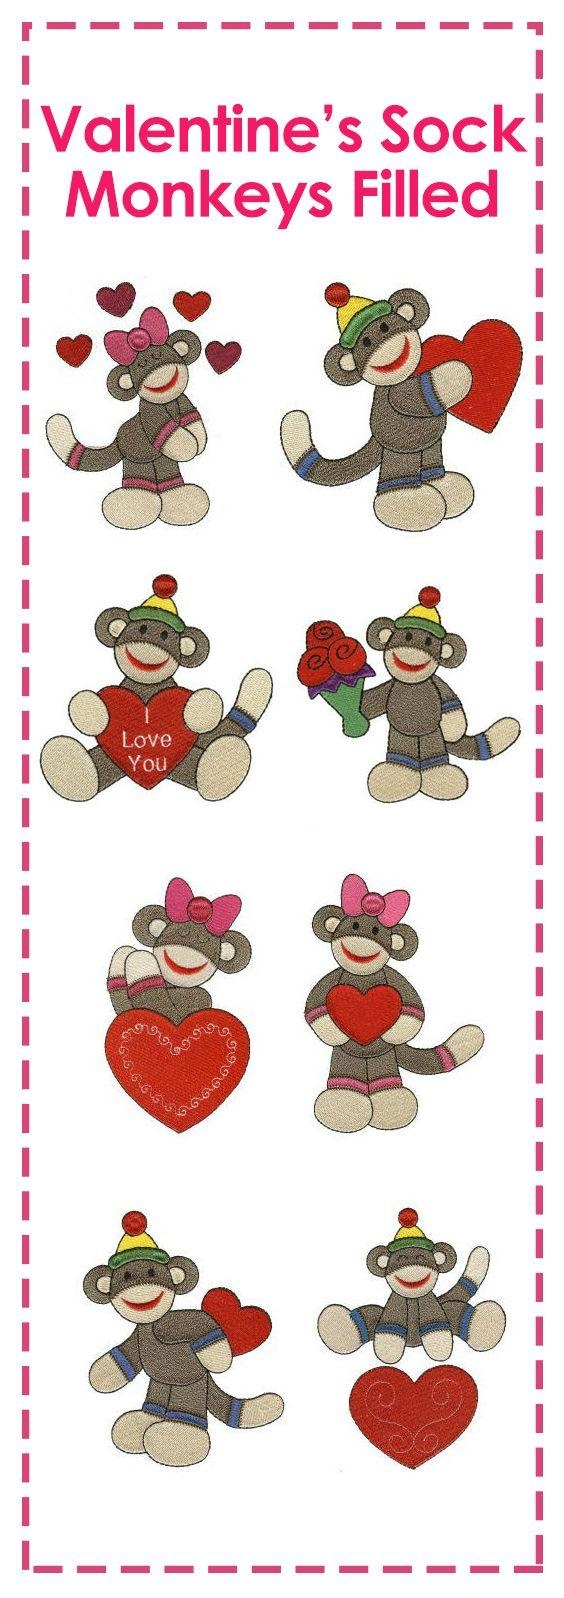 542 Best Diy Sock Monkey Parties Etc. Images On Pinterest | Sock Intended For Sock Monkey Wall Art (Photo 10 of 20)